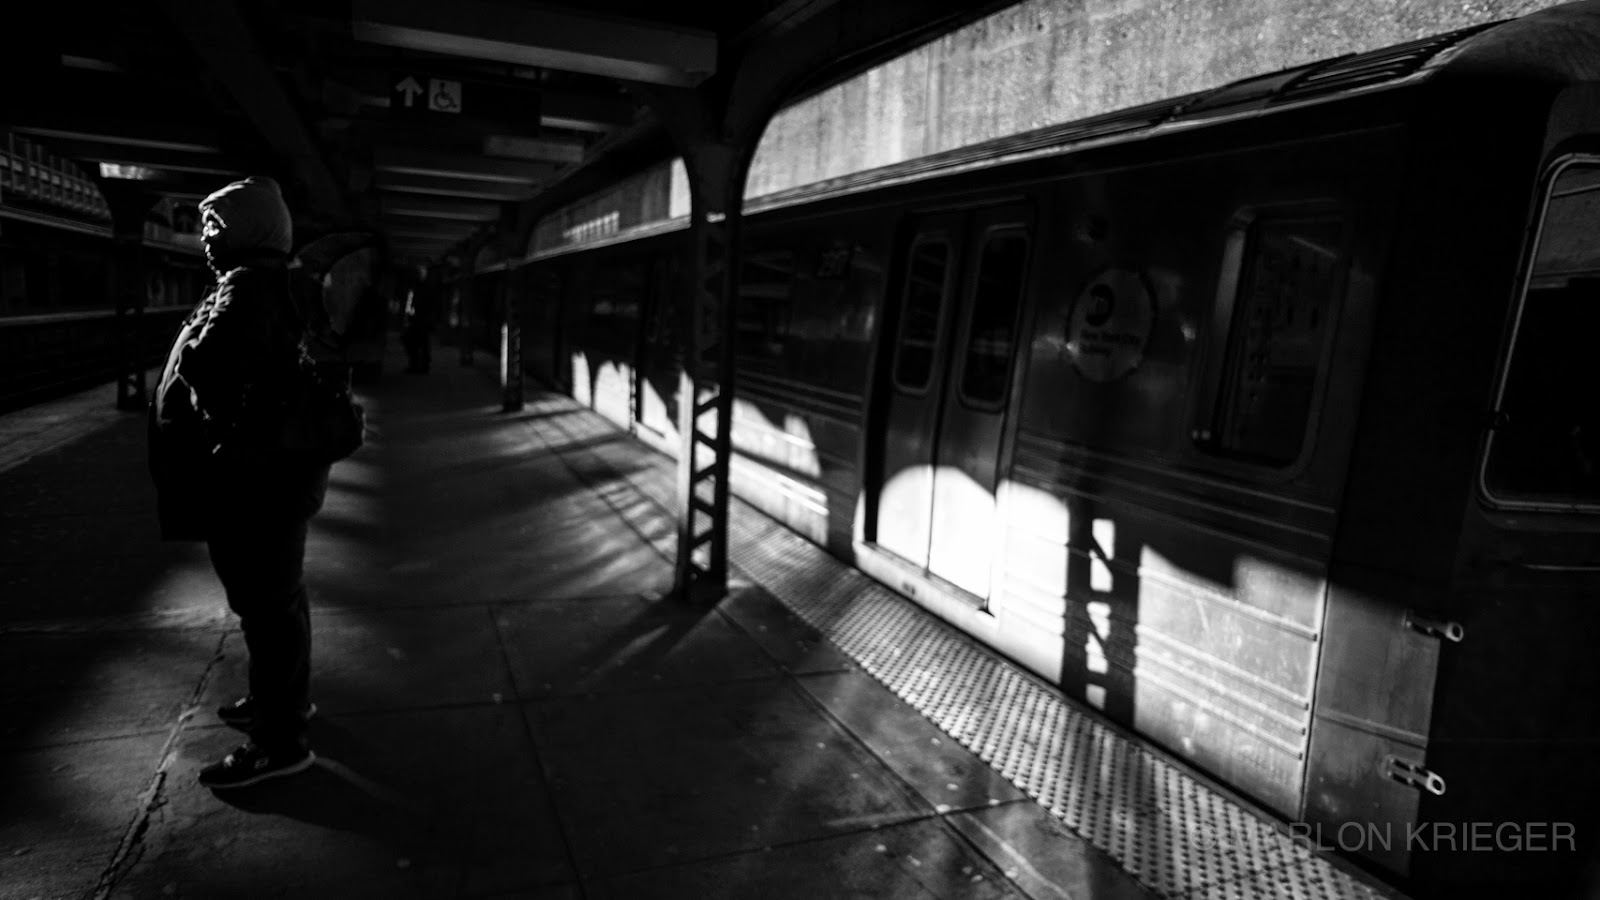 A women stands on the Q Train platform in brooklyn